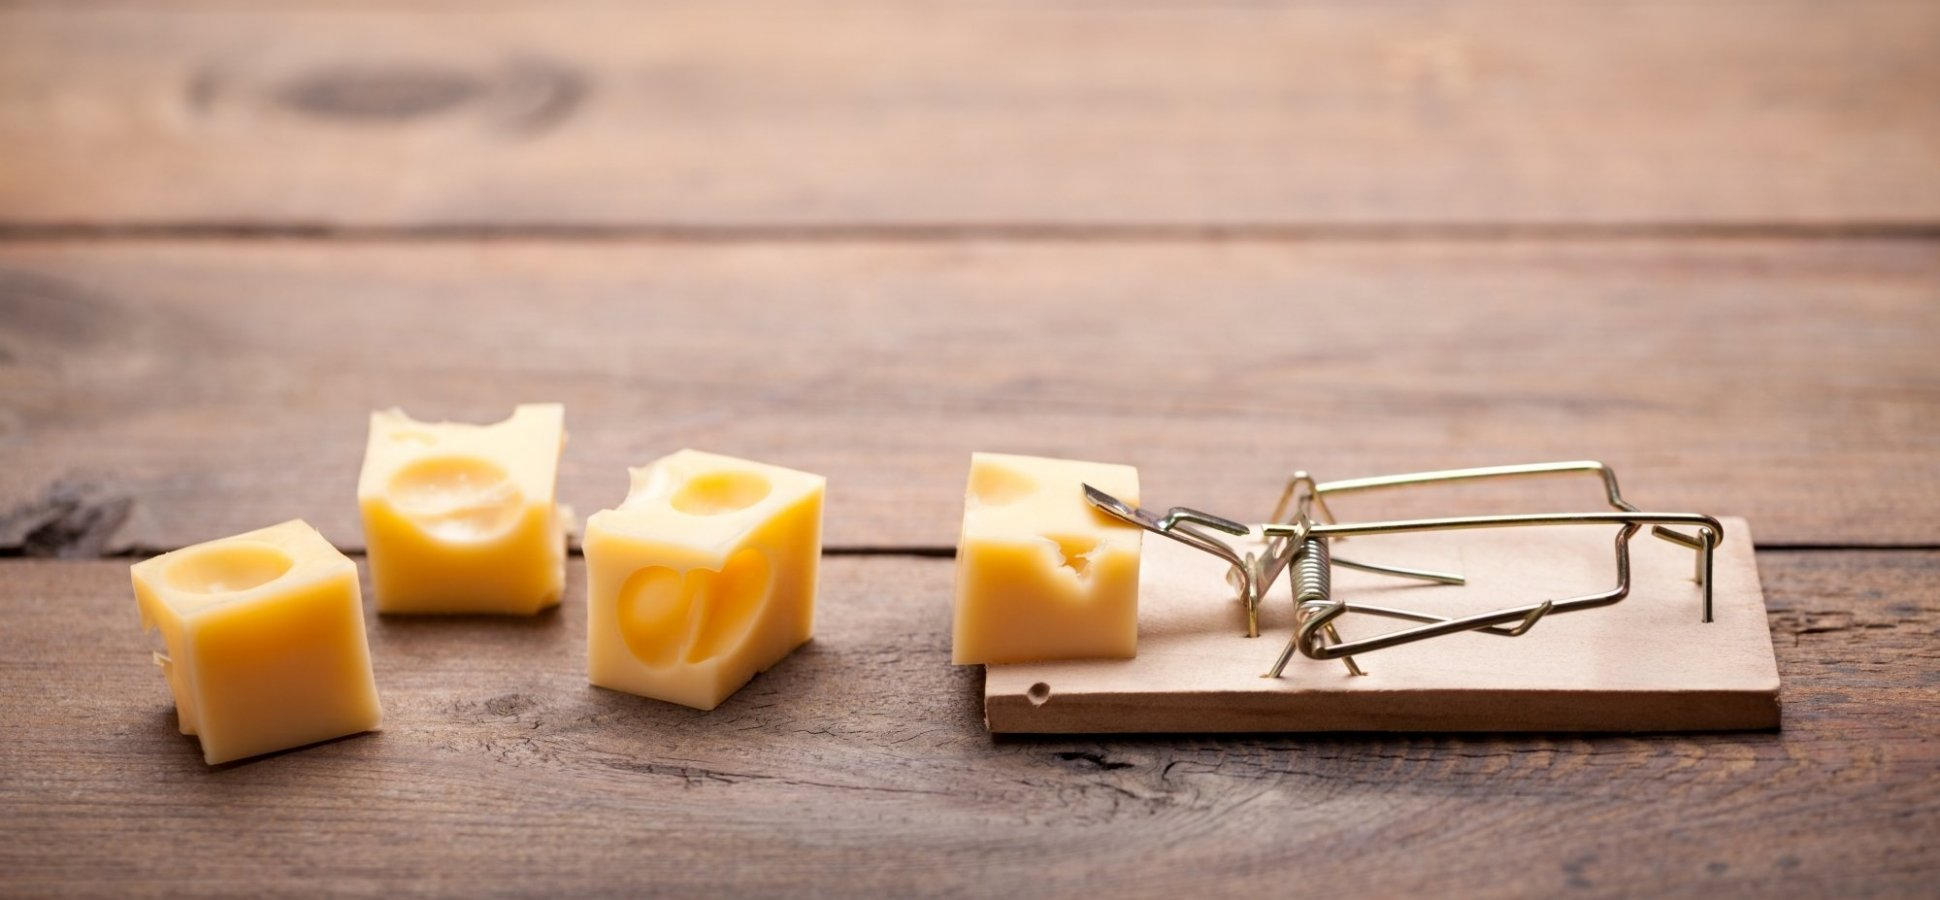 5 Common Traps Newly-Minted Managers Need to Avoid